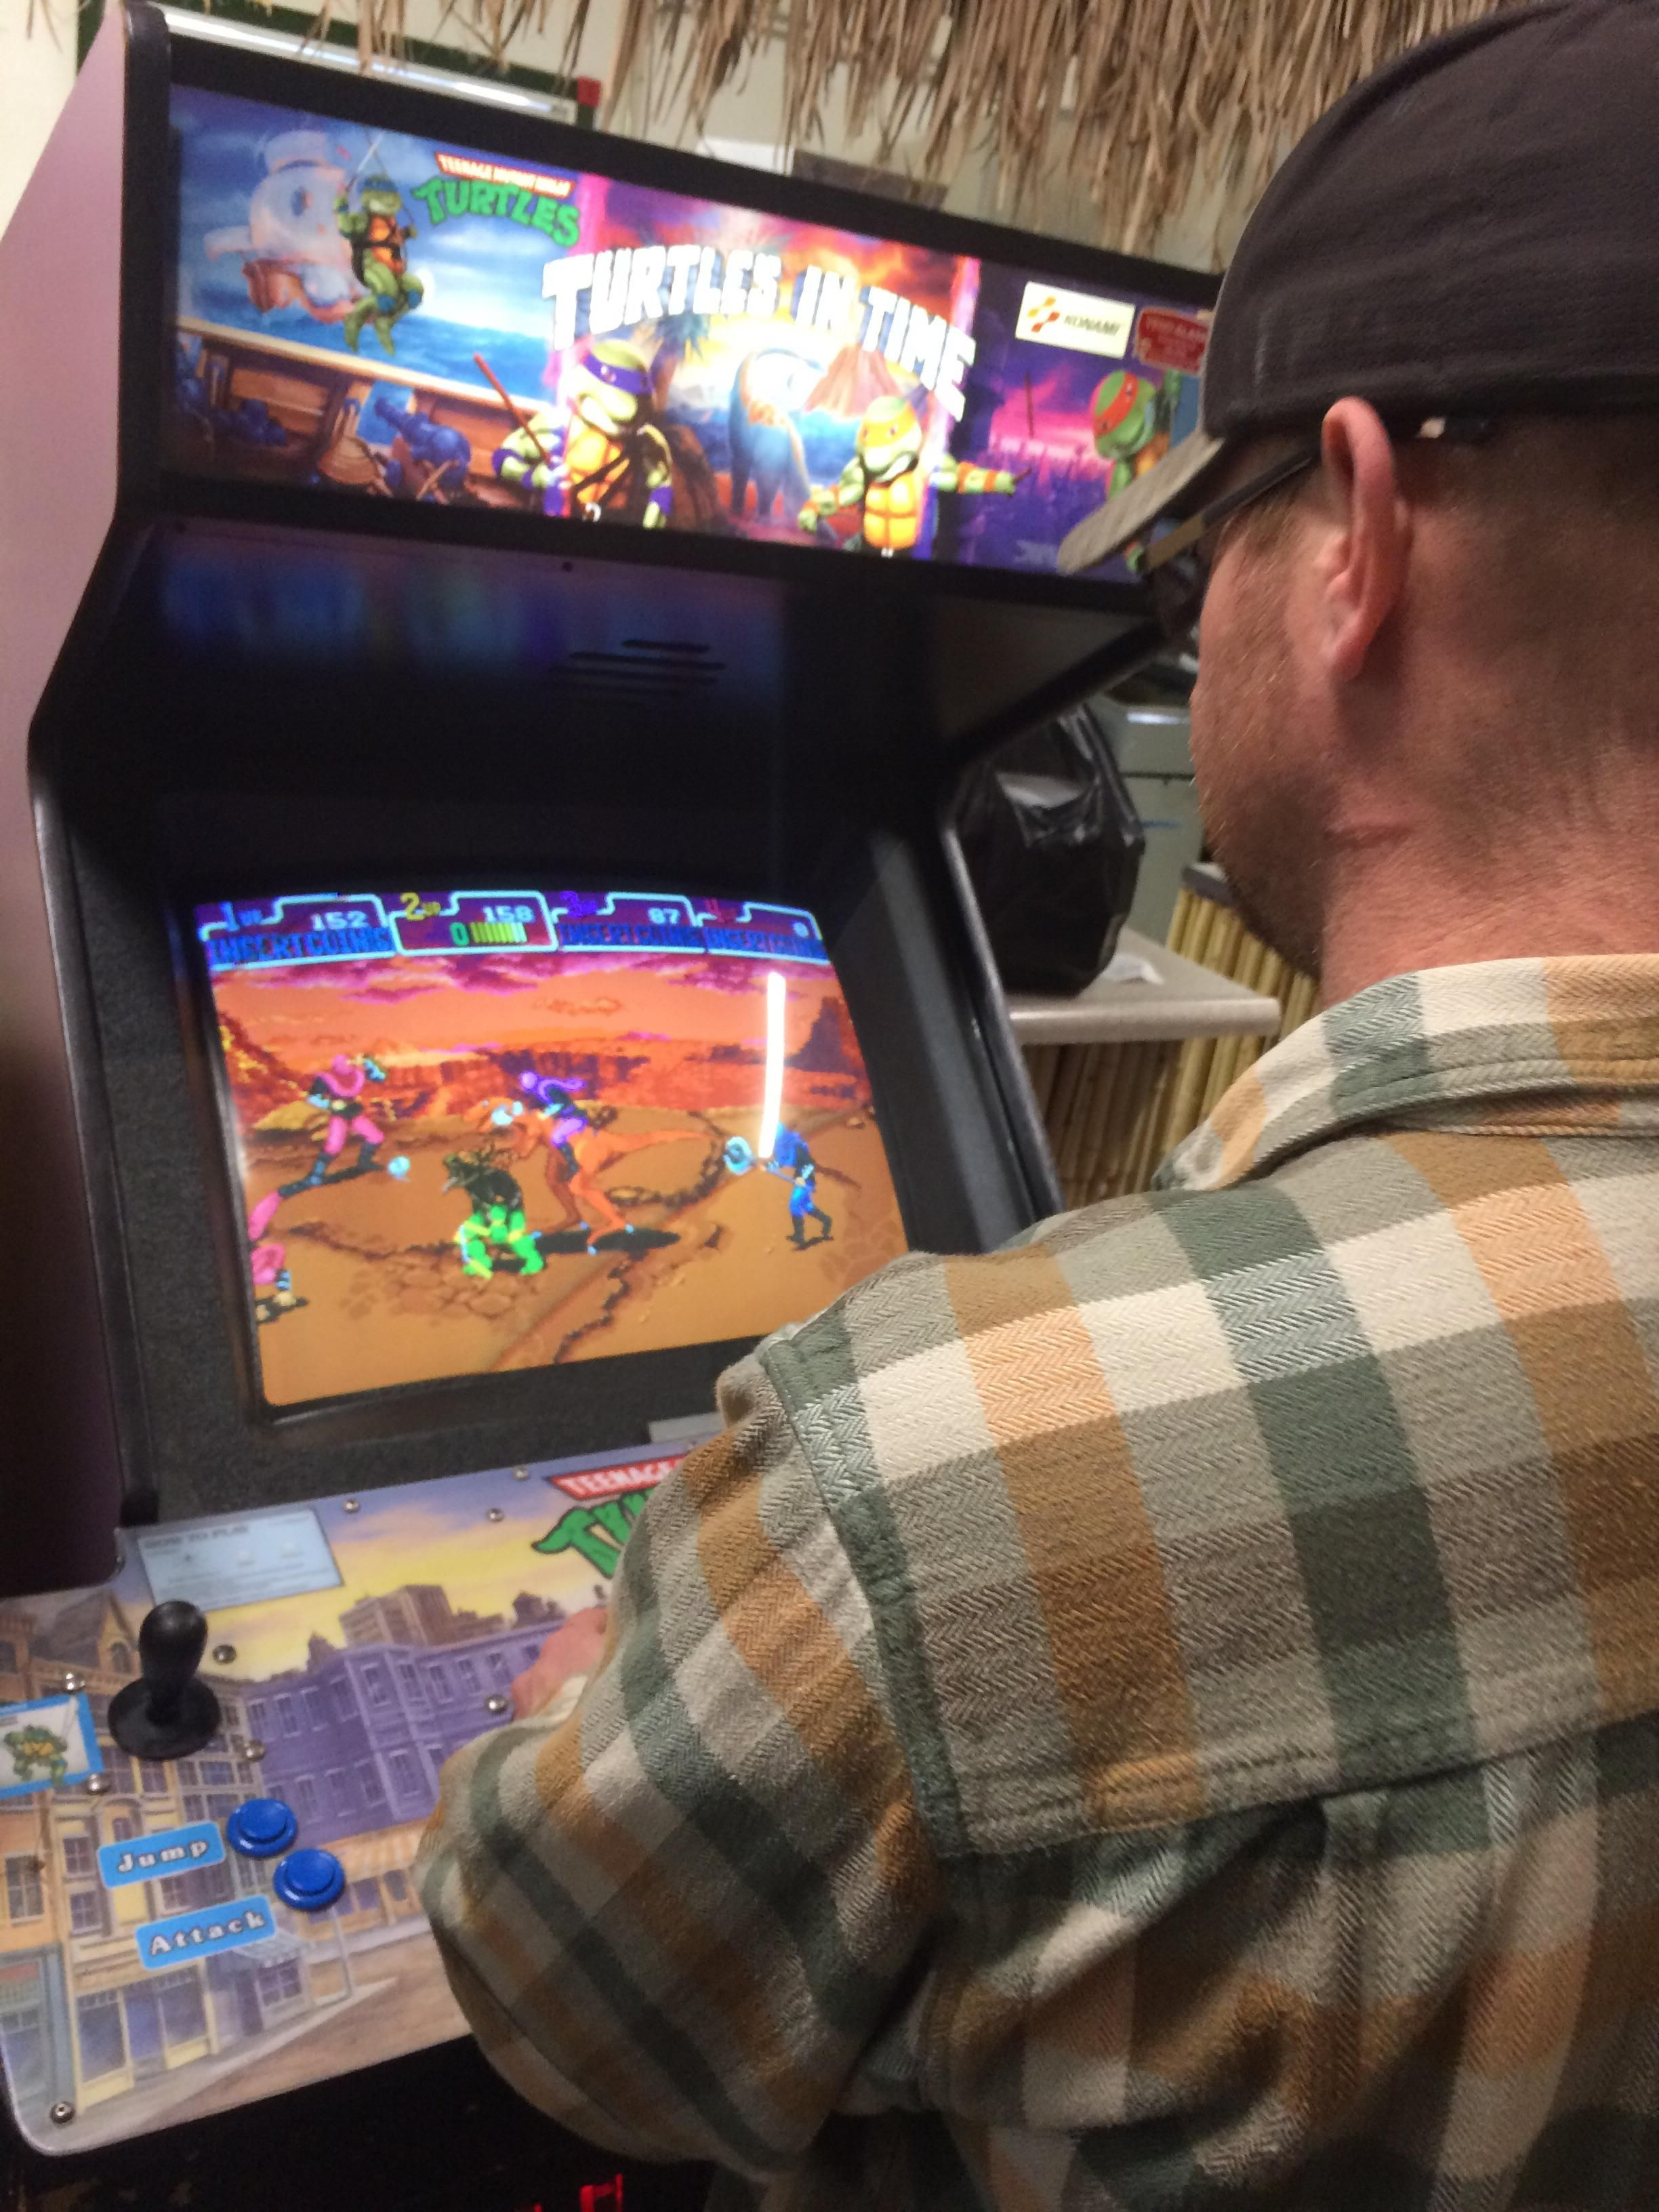 Game for coworkers - Our Local Cheesesteak Shop Has Some Classic Arcade Games Set Up My Coworkers And I